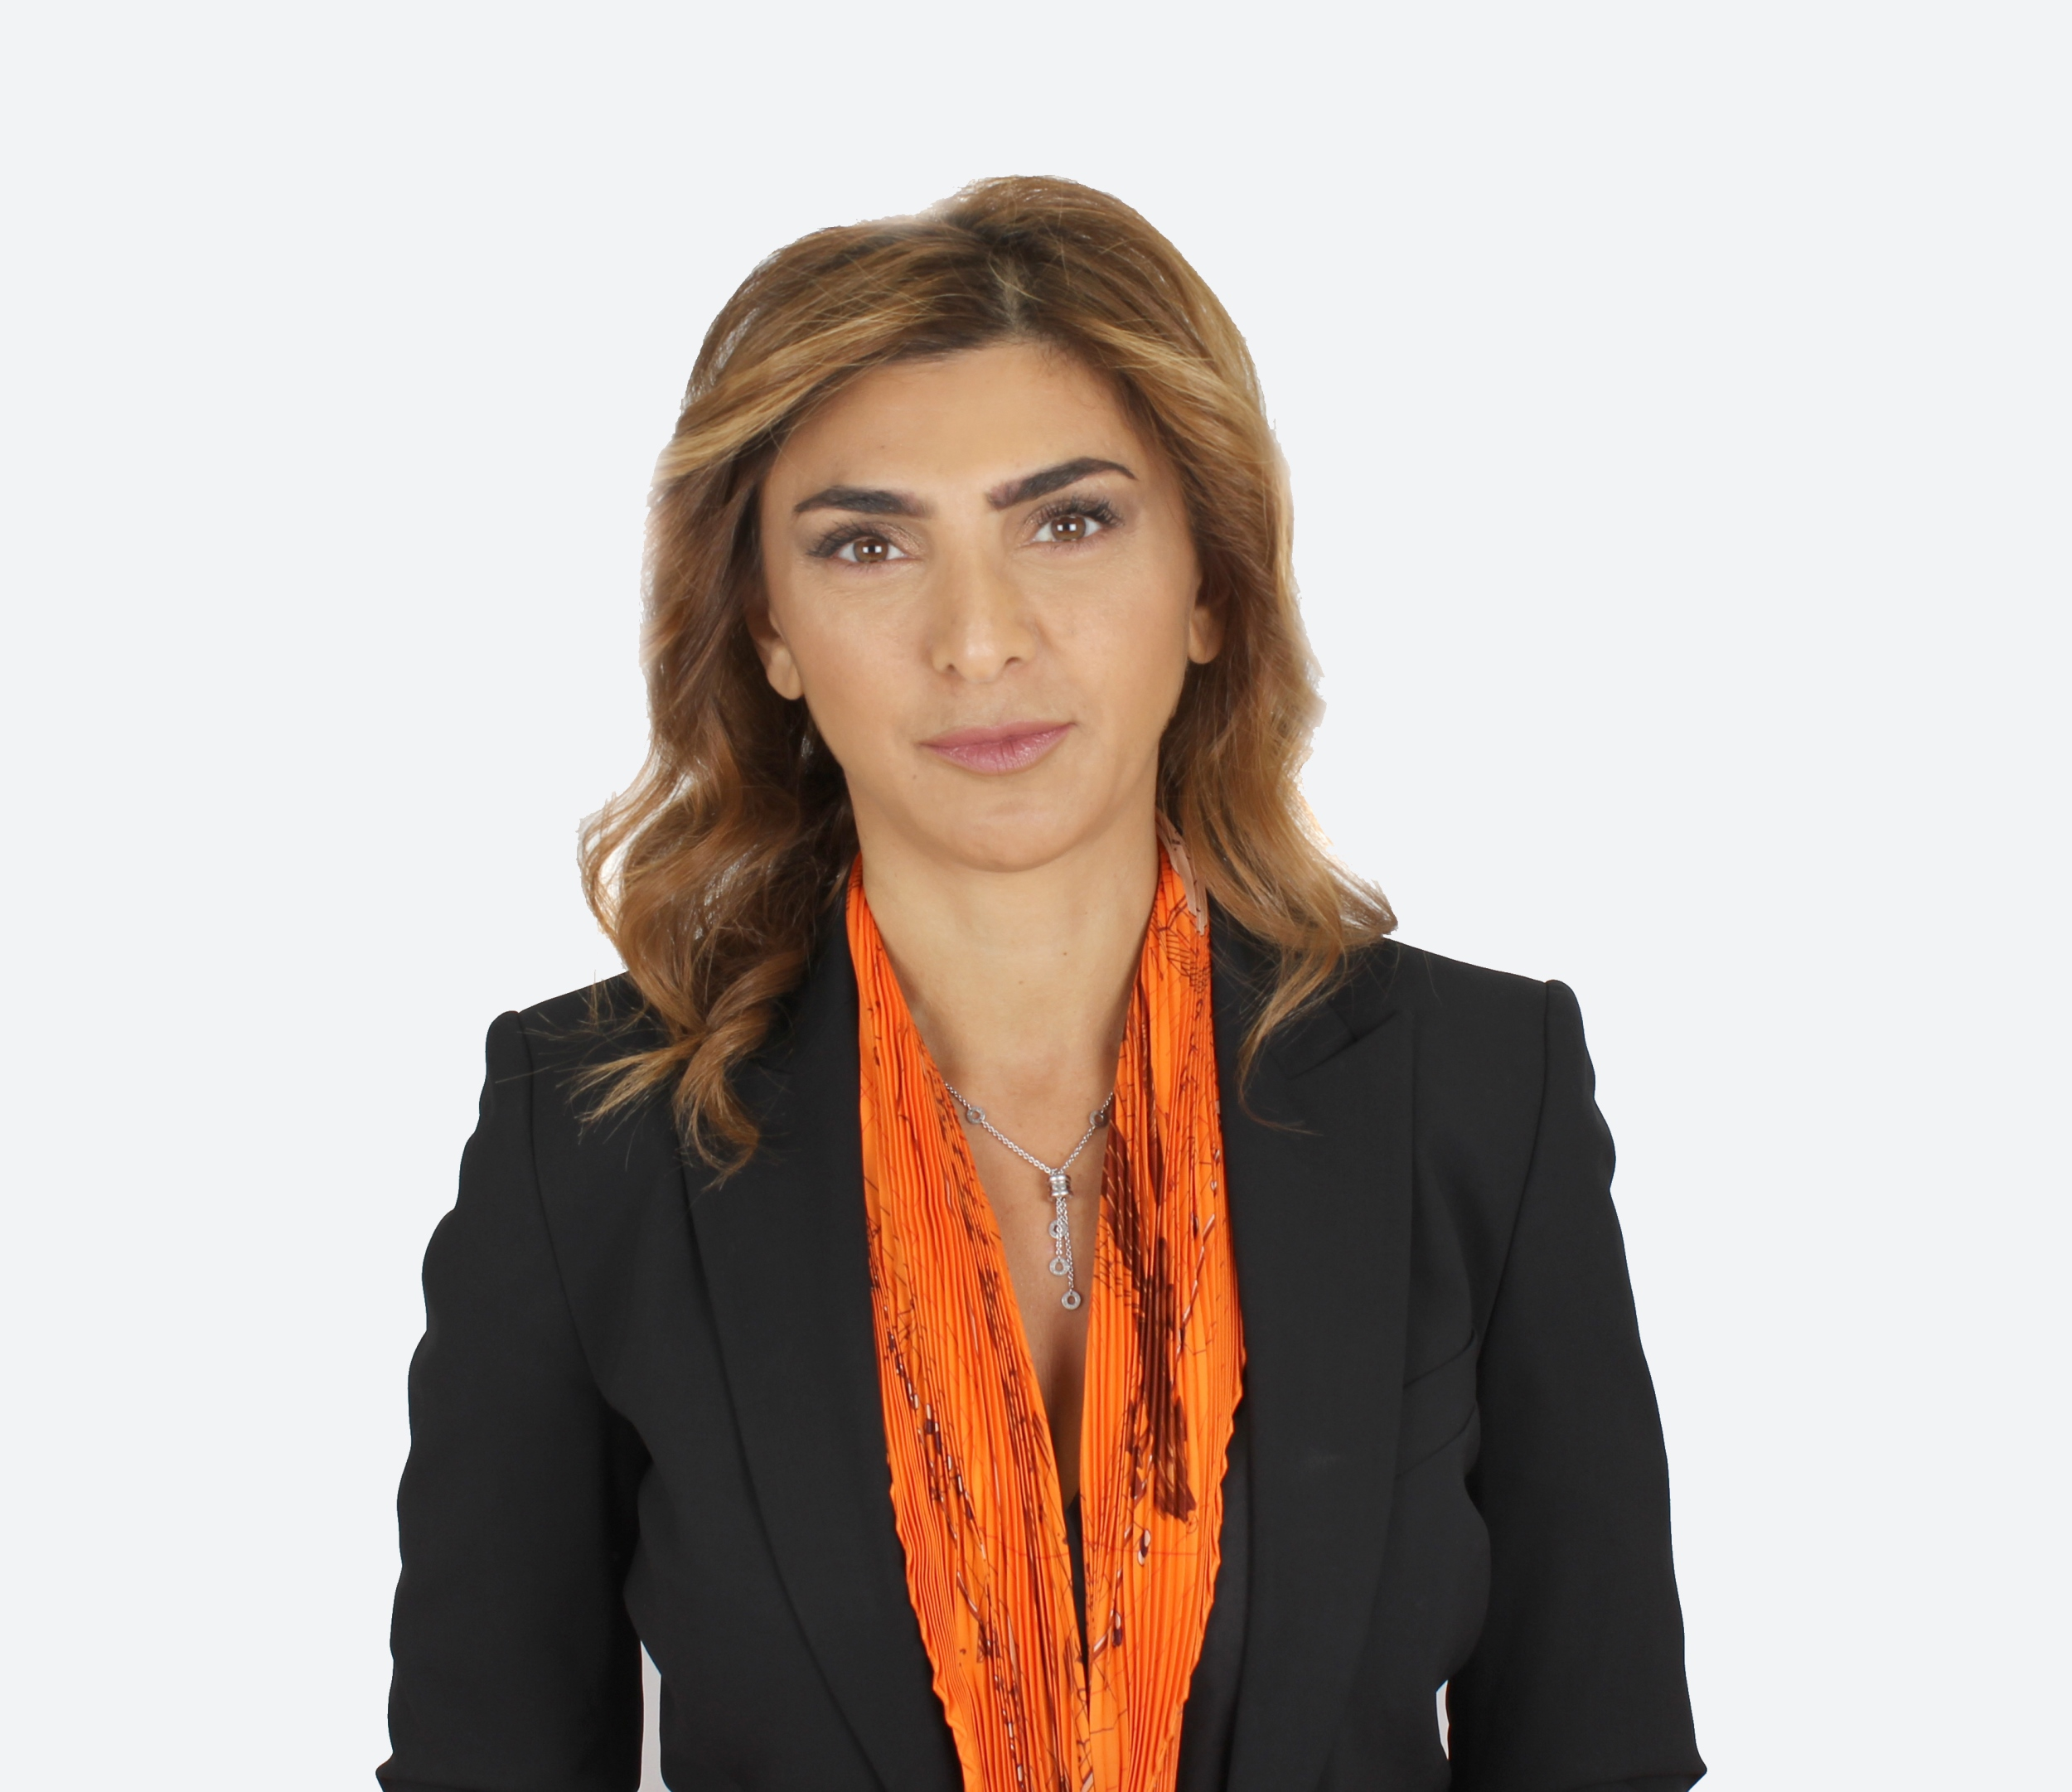 Avaya Appoints Faten Halabi To Drive Sales Growth For